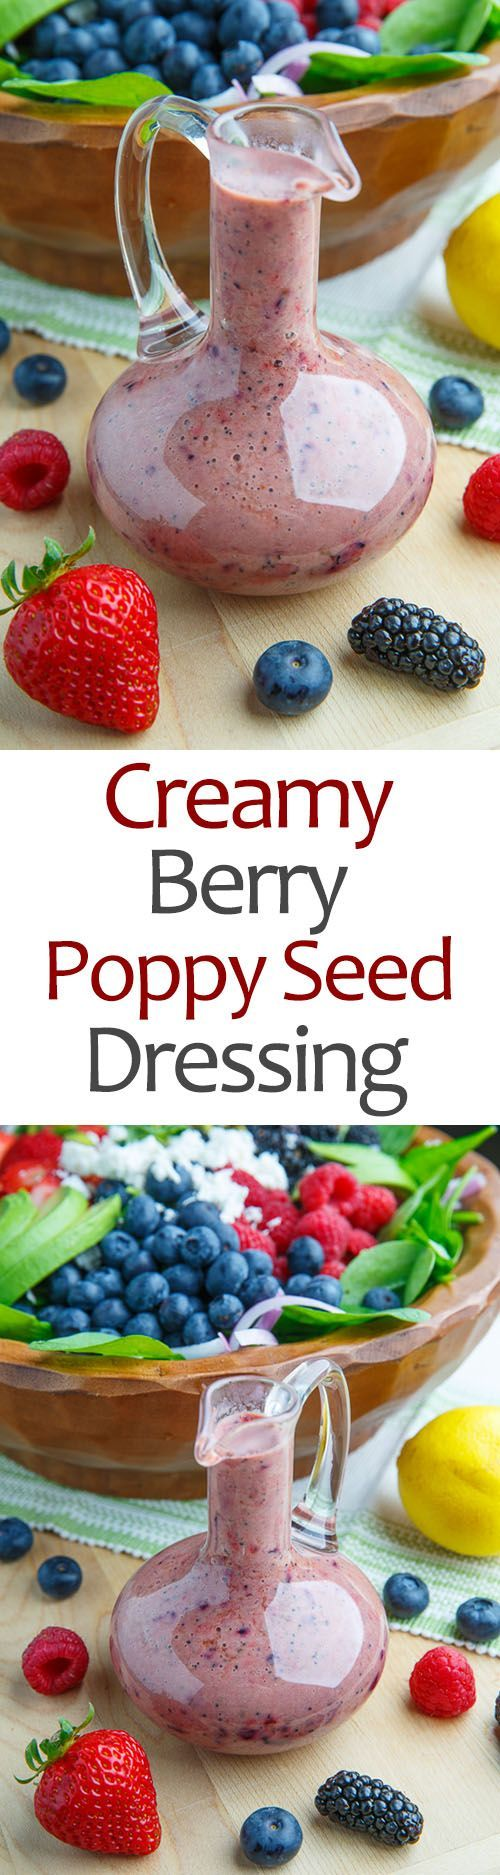 Photo of Creamy Berry Poppy Seed Dressing #Berry #Creamy #Dressing #ensala